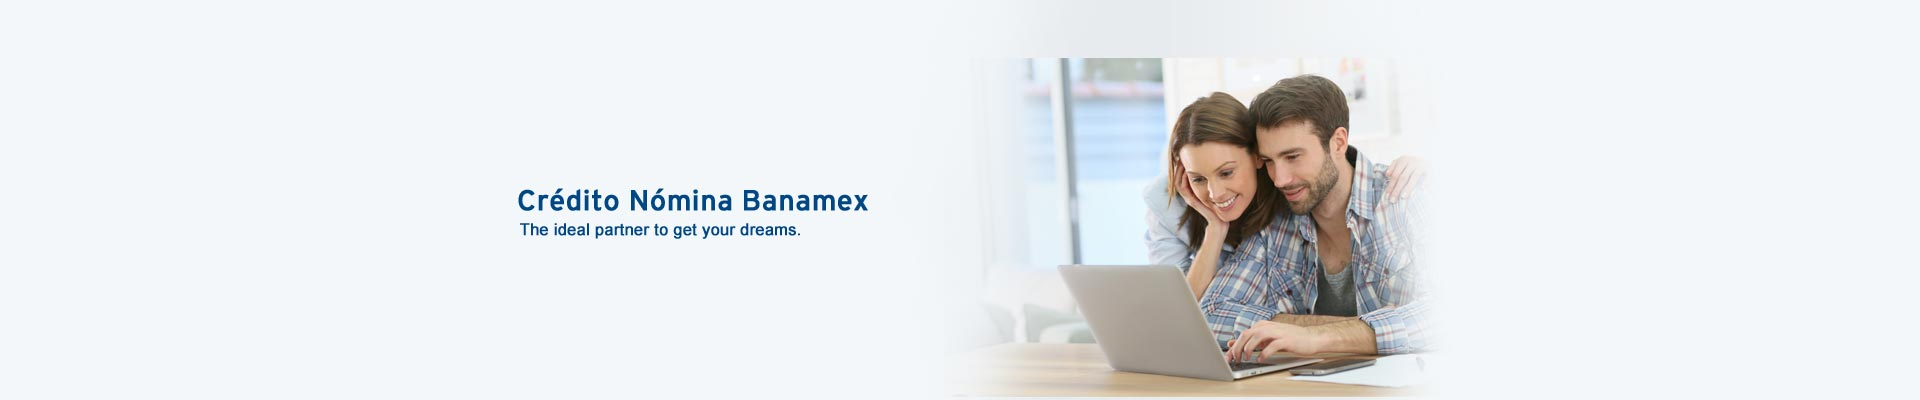 Crédito Nómina Banamex you use it, pay it back and use it again